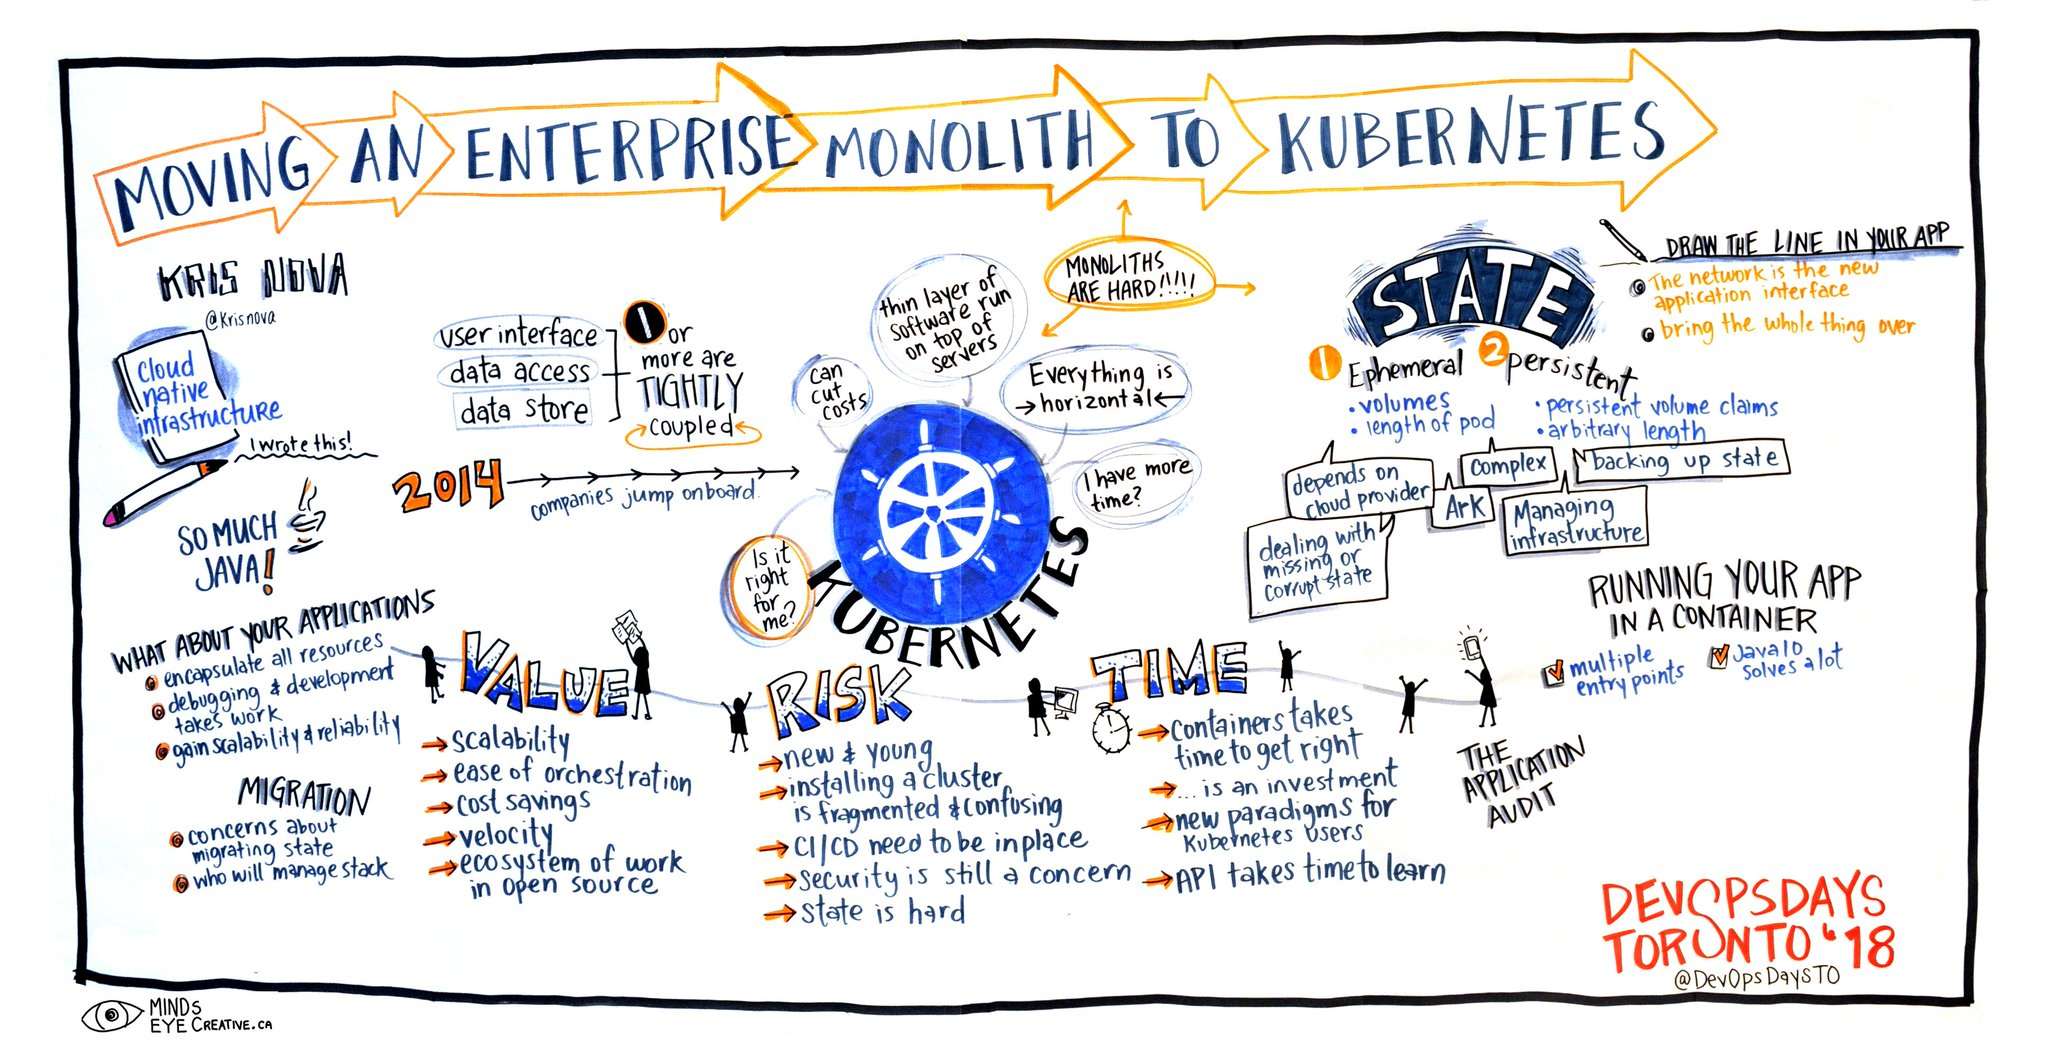 airflow-guides/intro-to-kubernetes md at master · astronomer